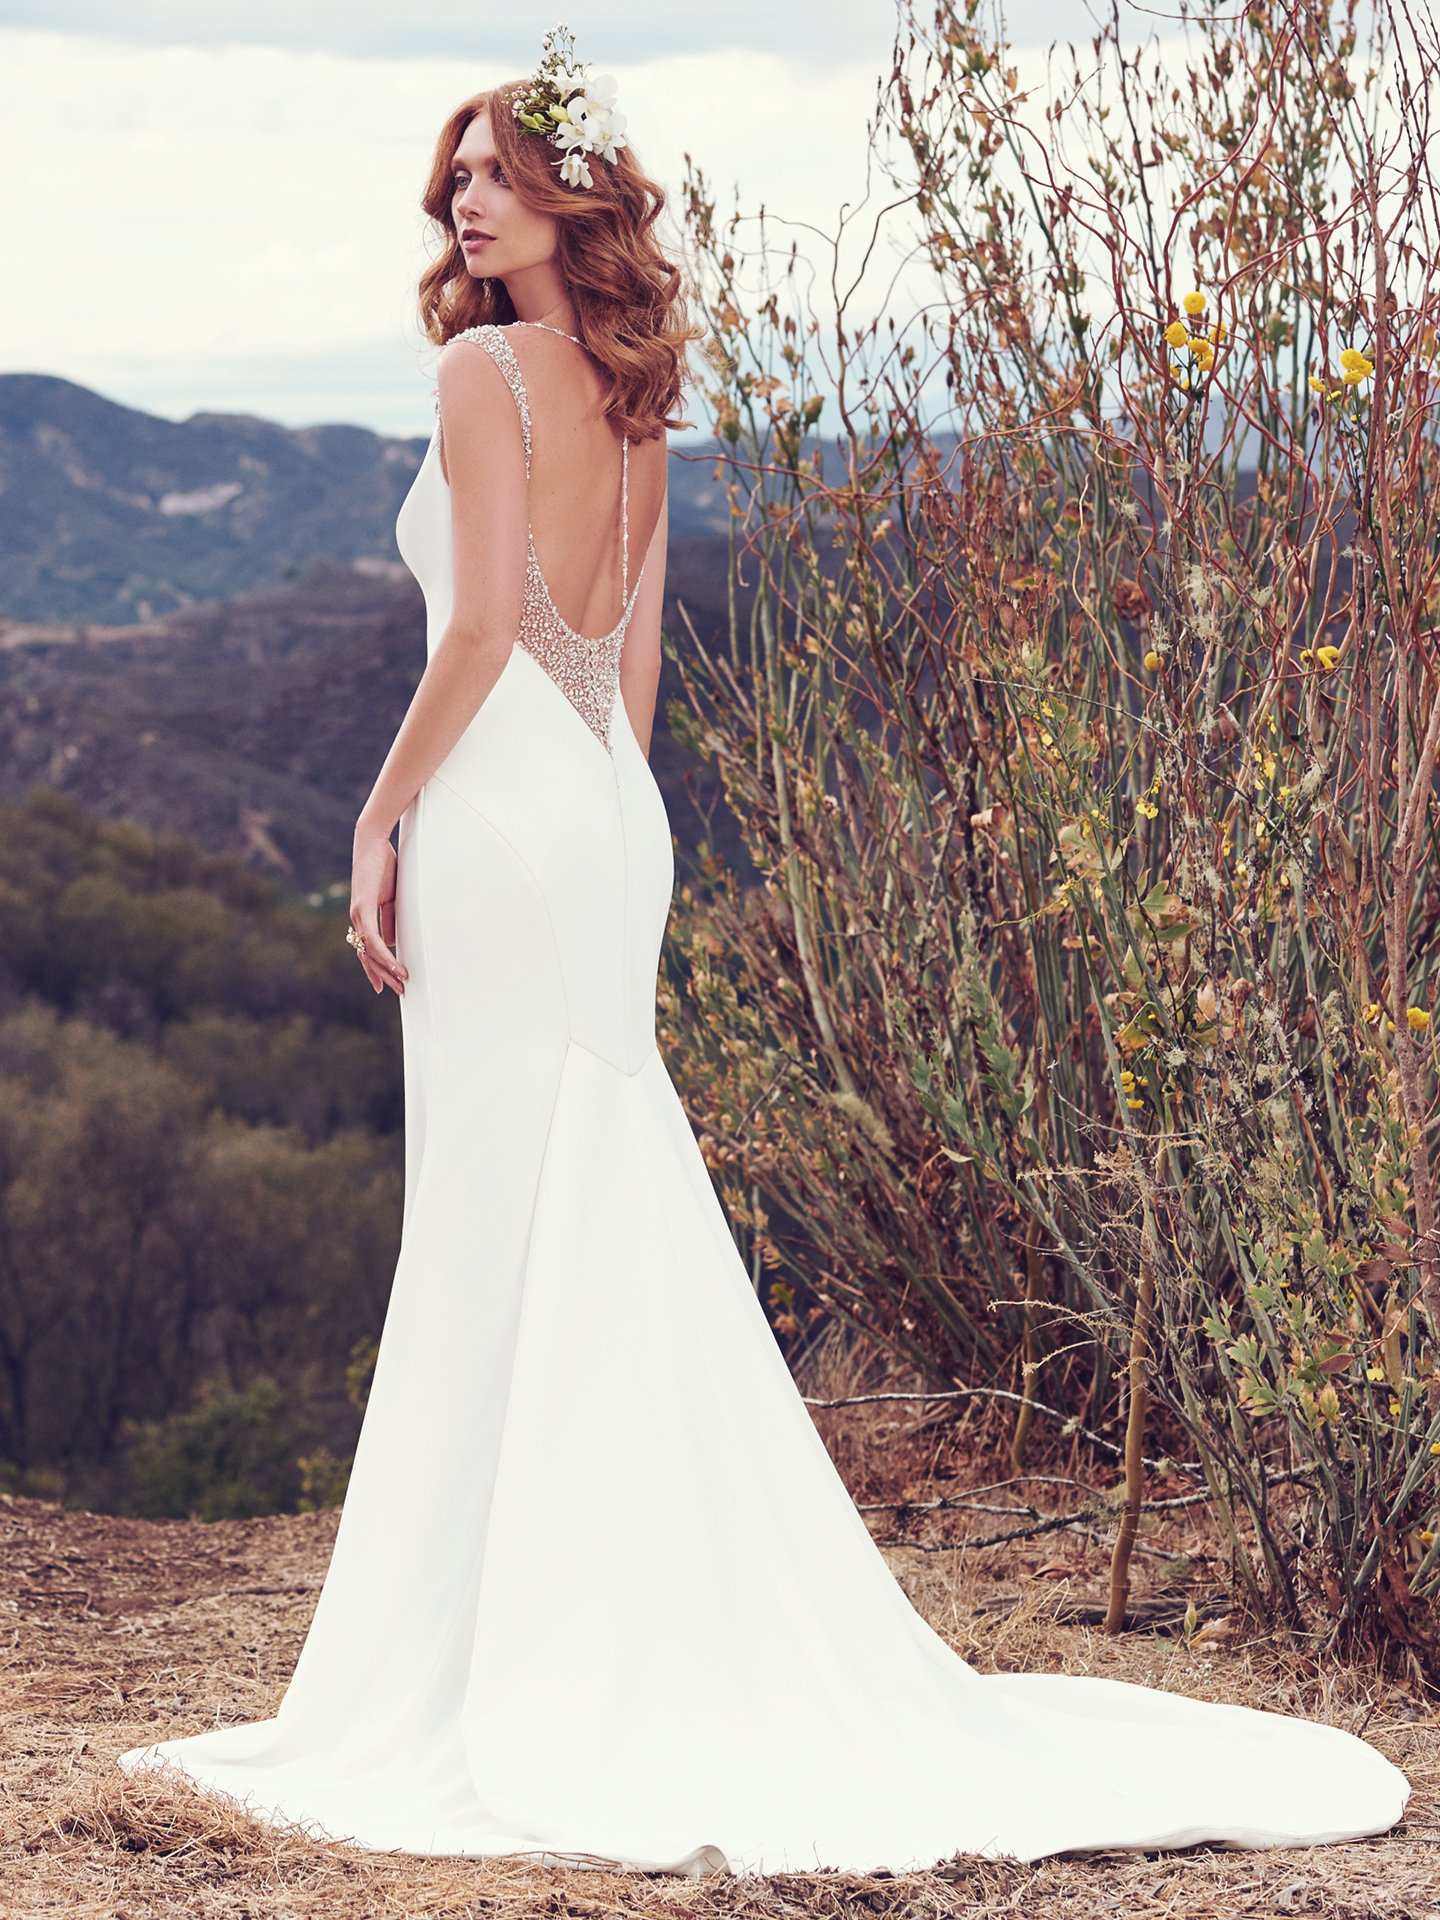 15 Gorgeous Statement-Back Gowns for the Stylish Bride - Evangelina wedding dress with statement back by Maggie Sottero